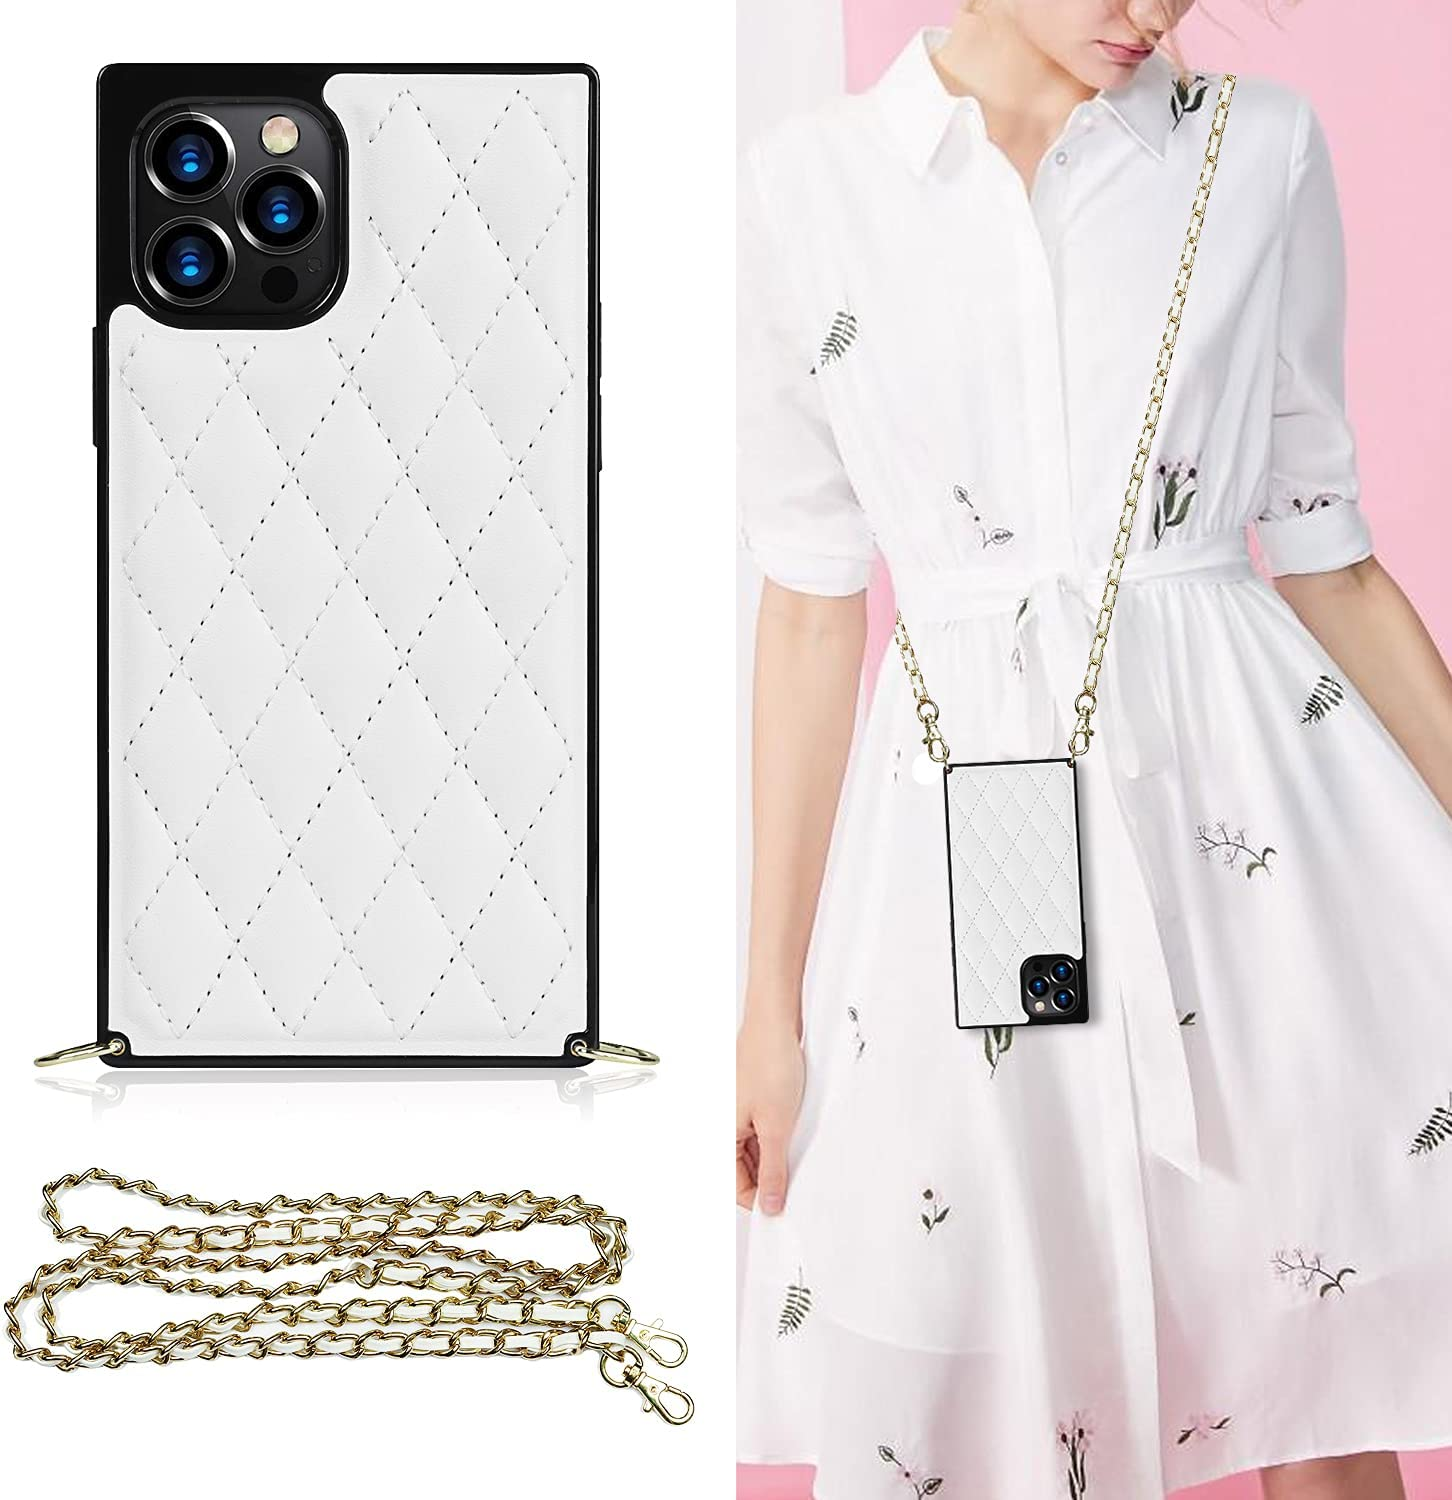 LUVI Compatible with iPhone 11 Pro Square Case for Women with Crossbody Neck Strap Lanyard Purse Handbag Shoulder Strap Protective Cover PU Leather Cute Fashion Case for iPhone 11 Pro White